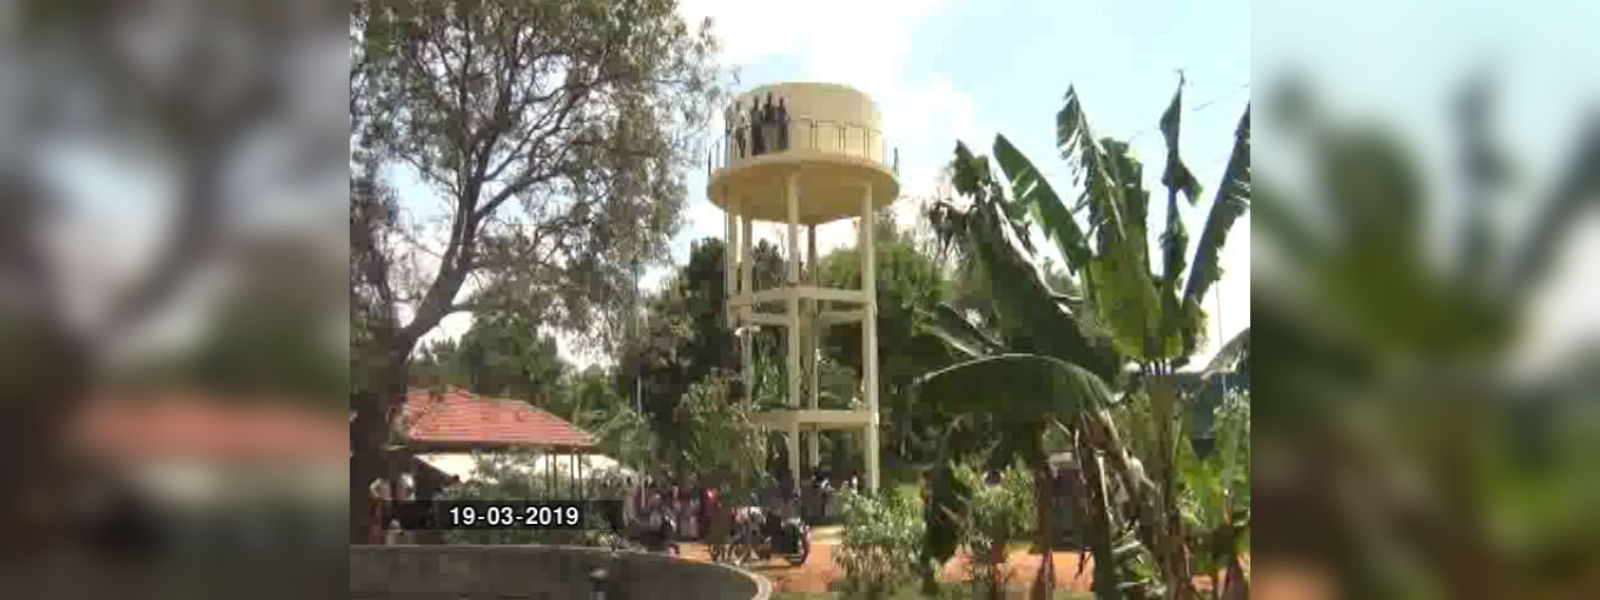 1900 families in Baragama suffer due to water supply disruption